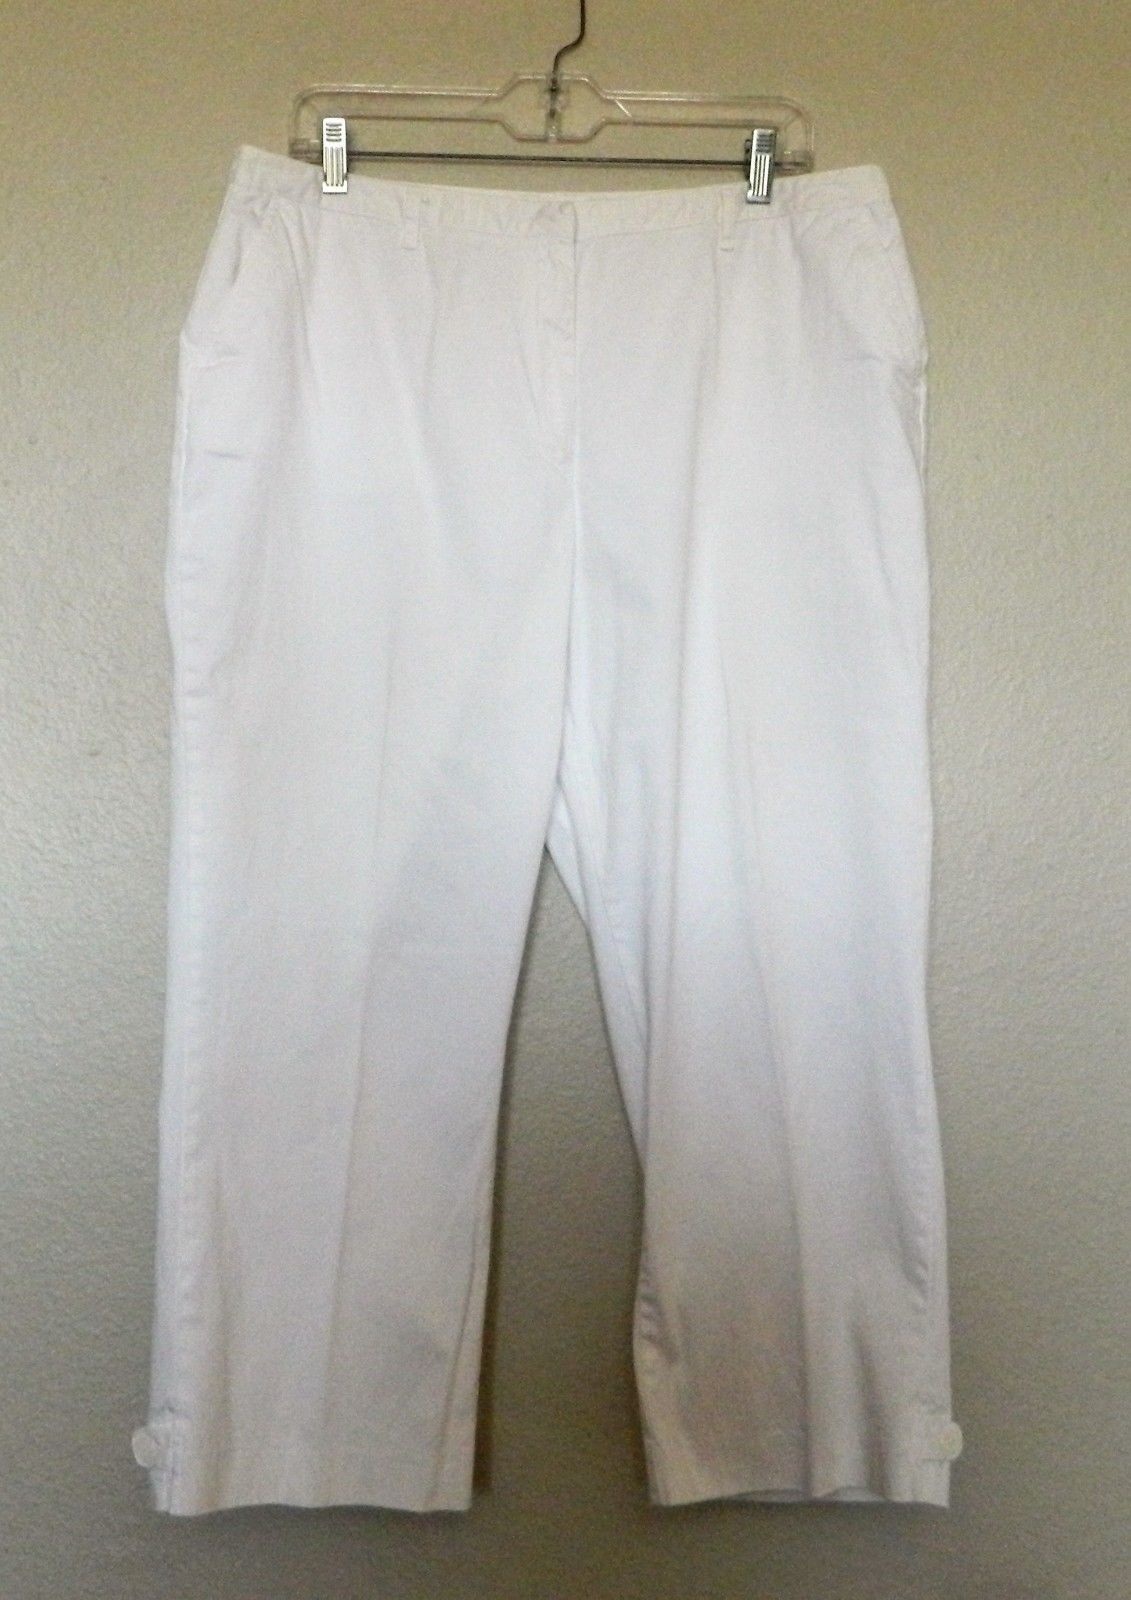 36848903ca6 Cato Capri Pants 16 White Cropped Classic and 18 similar items. 57